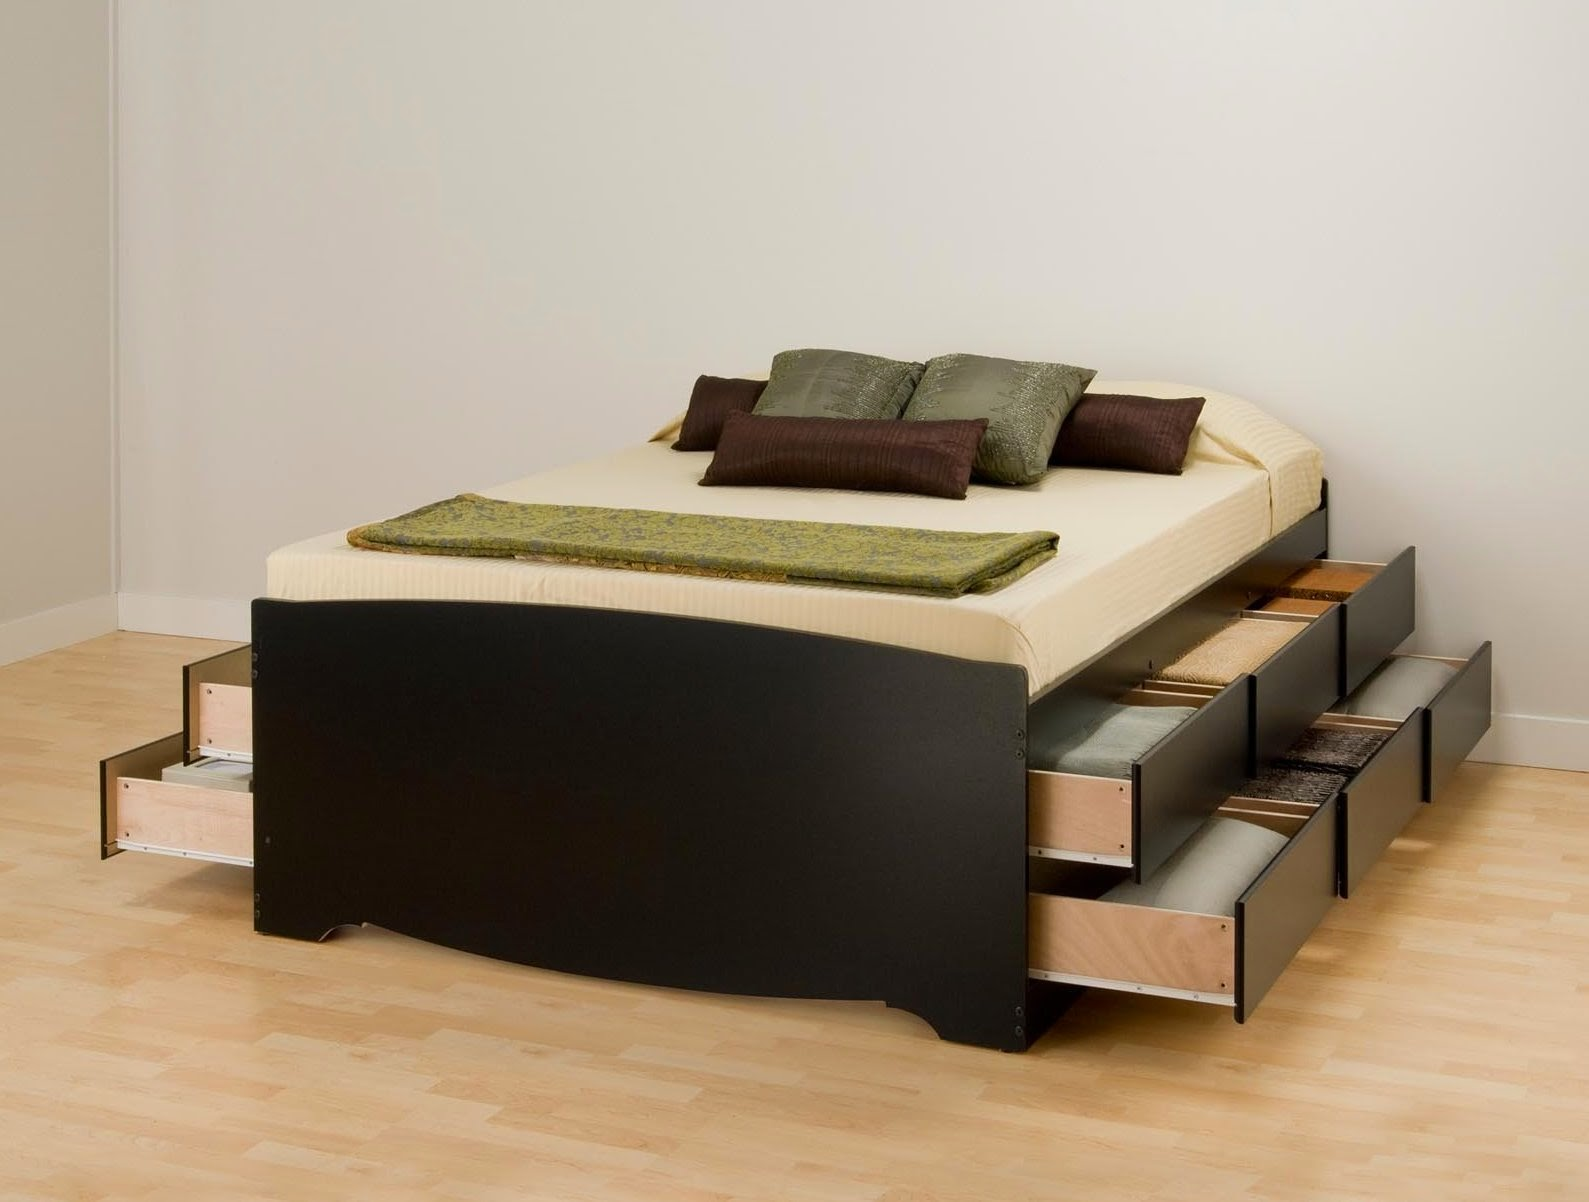 Twin Bed with Double Drawers No Headboard